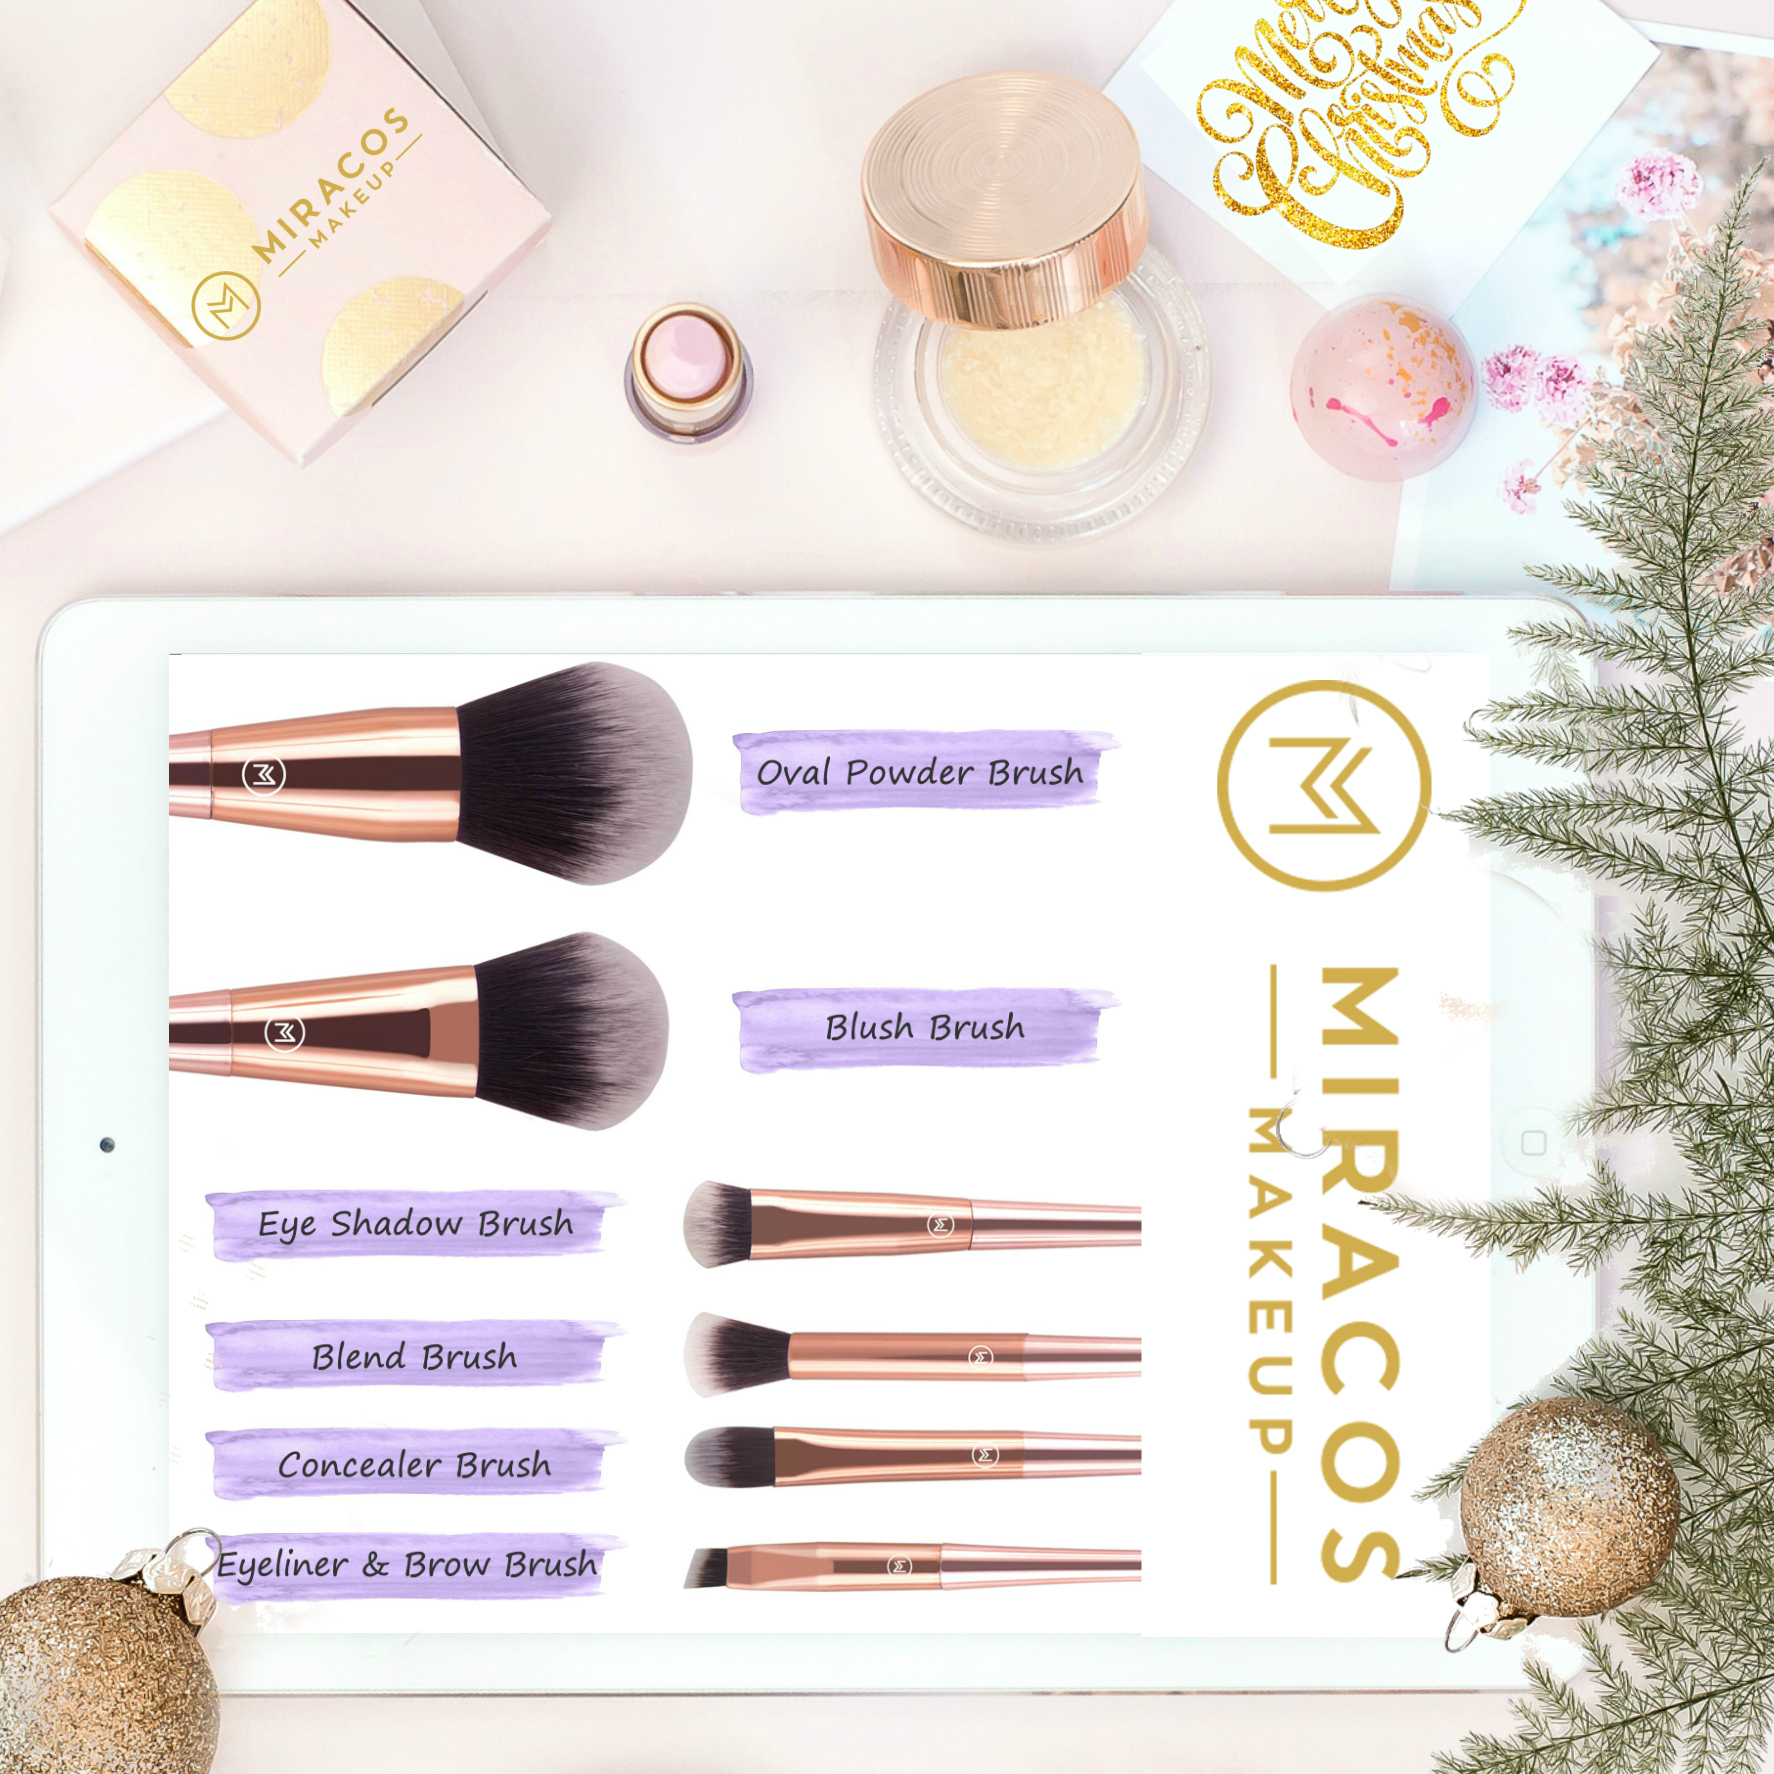 Miracos makeup STILETTOS LIMITED EDITION brushes for the holidays By Beauty after forty